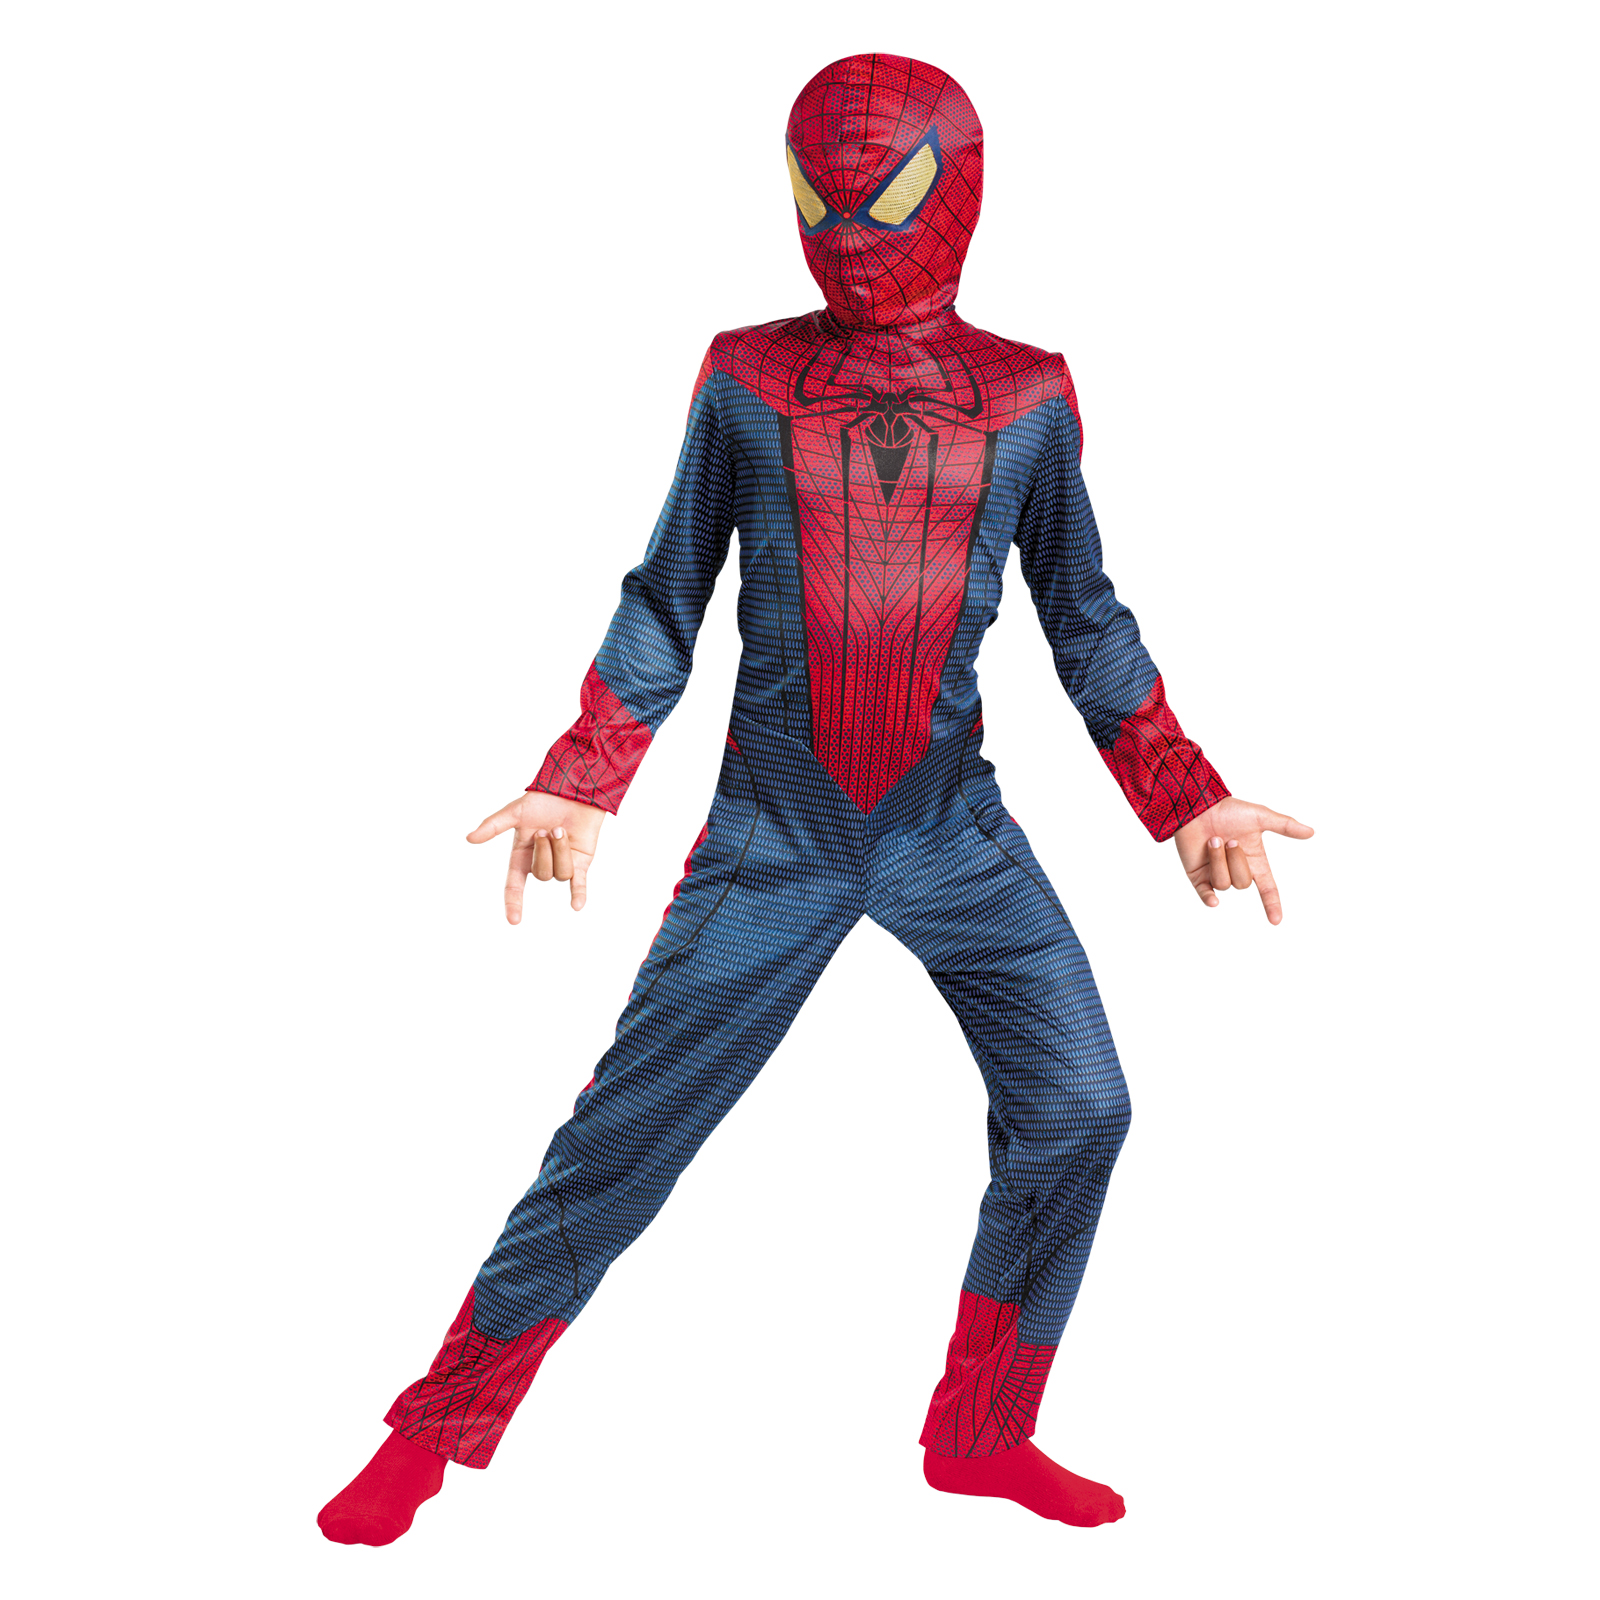 Boys Spiderman Movie Classic Halloween Costume PartNumber: 3ZZVA75756612P MfgPartNumber: DG42471L